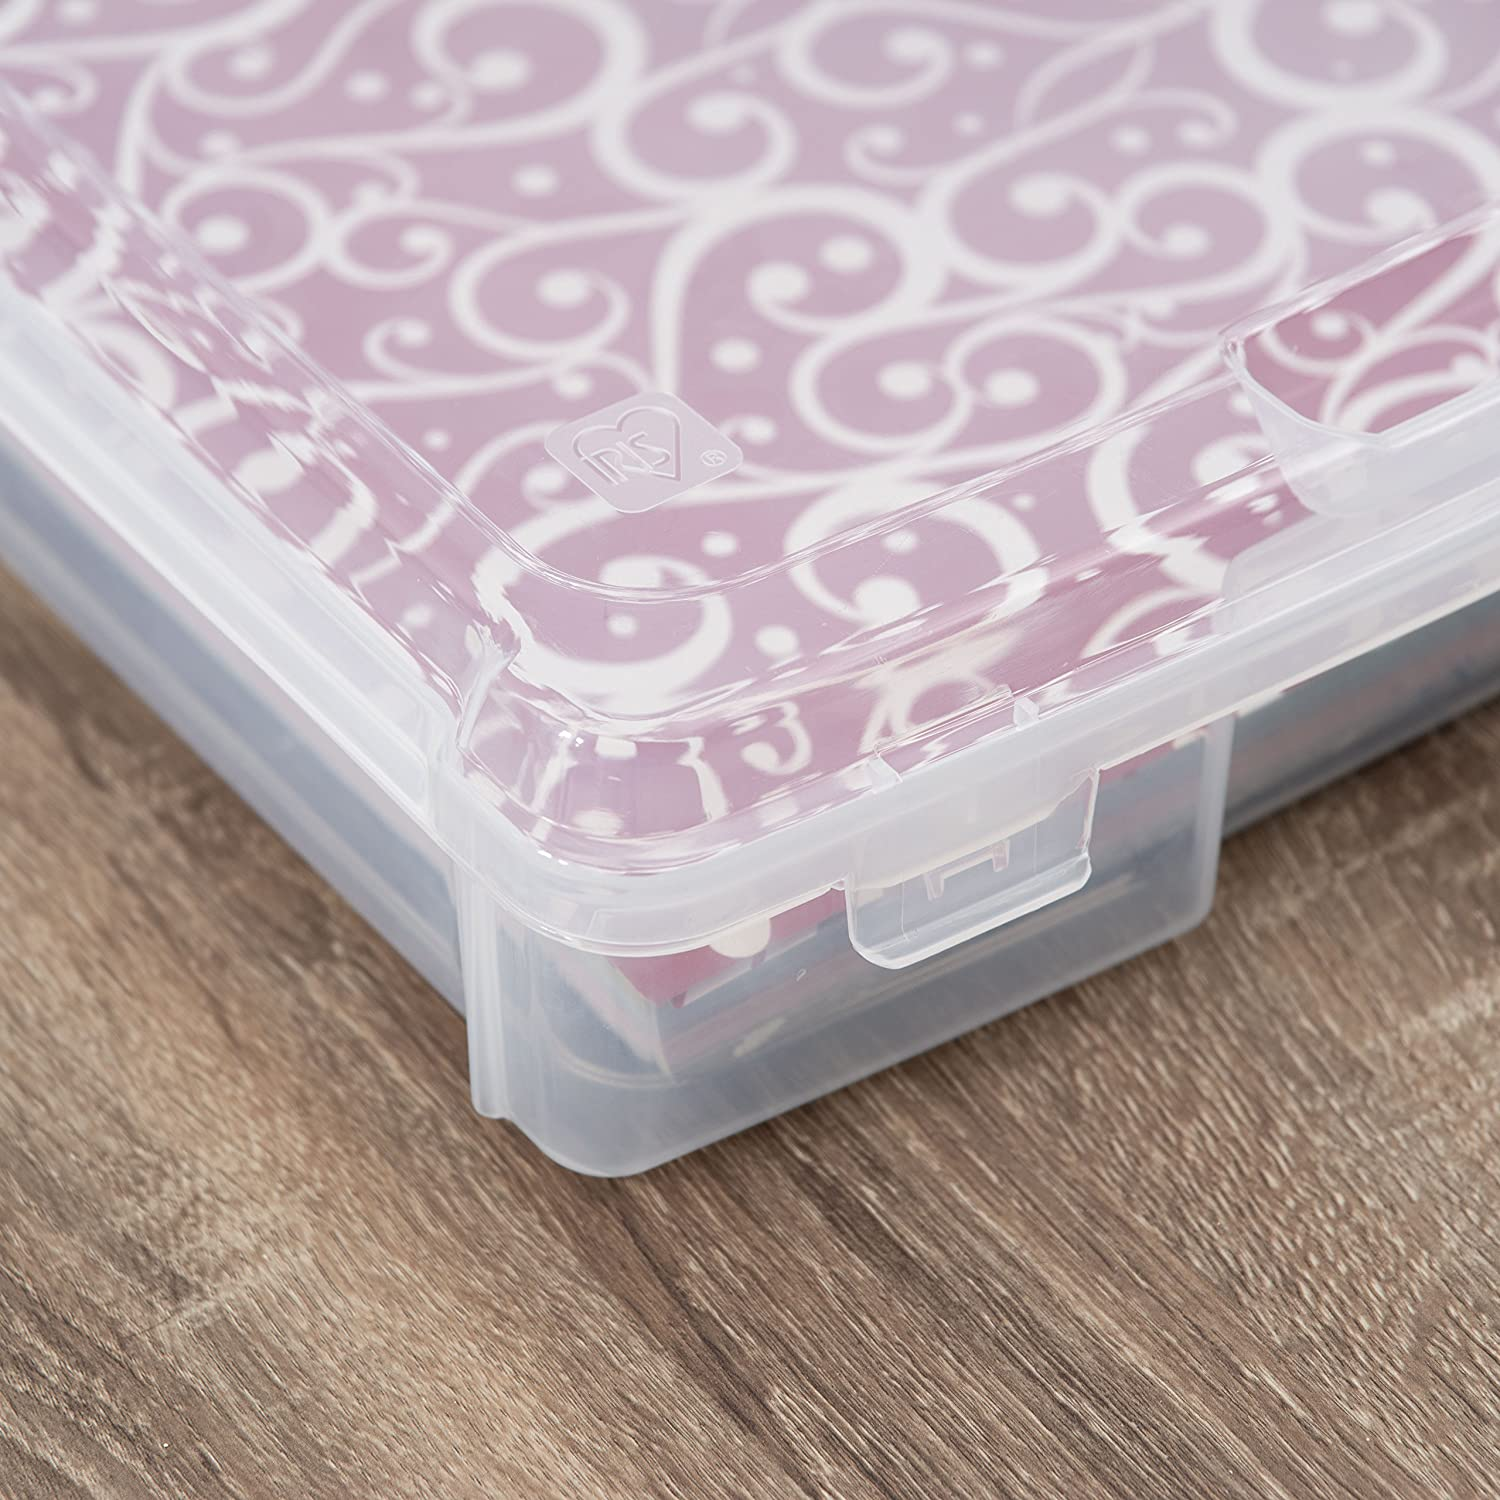 Holds 12x12 Paper Inc IRIS USA Clear clear SBC-350E 12 x 12 Portable Project Case